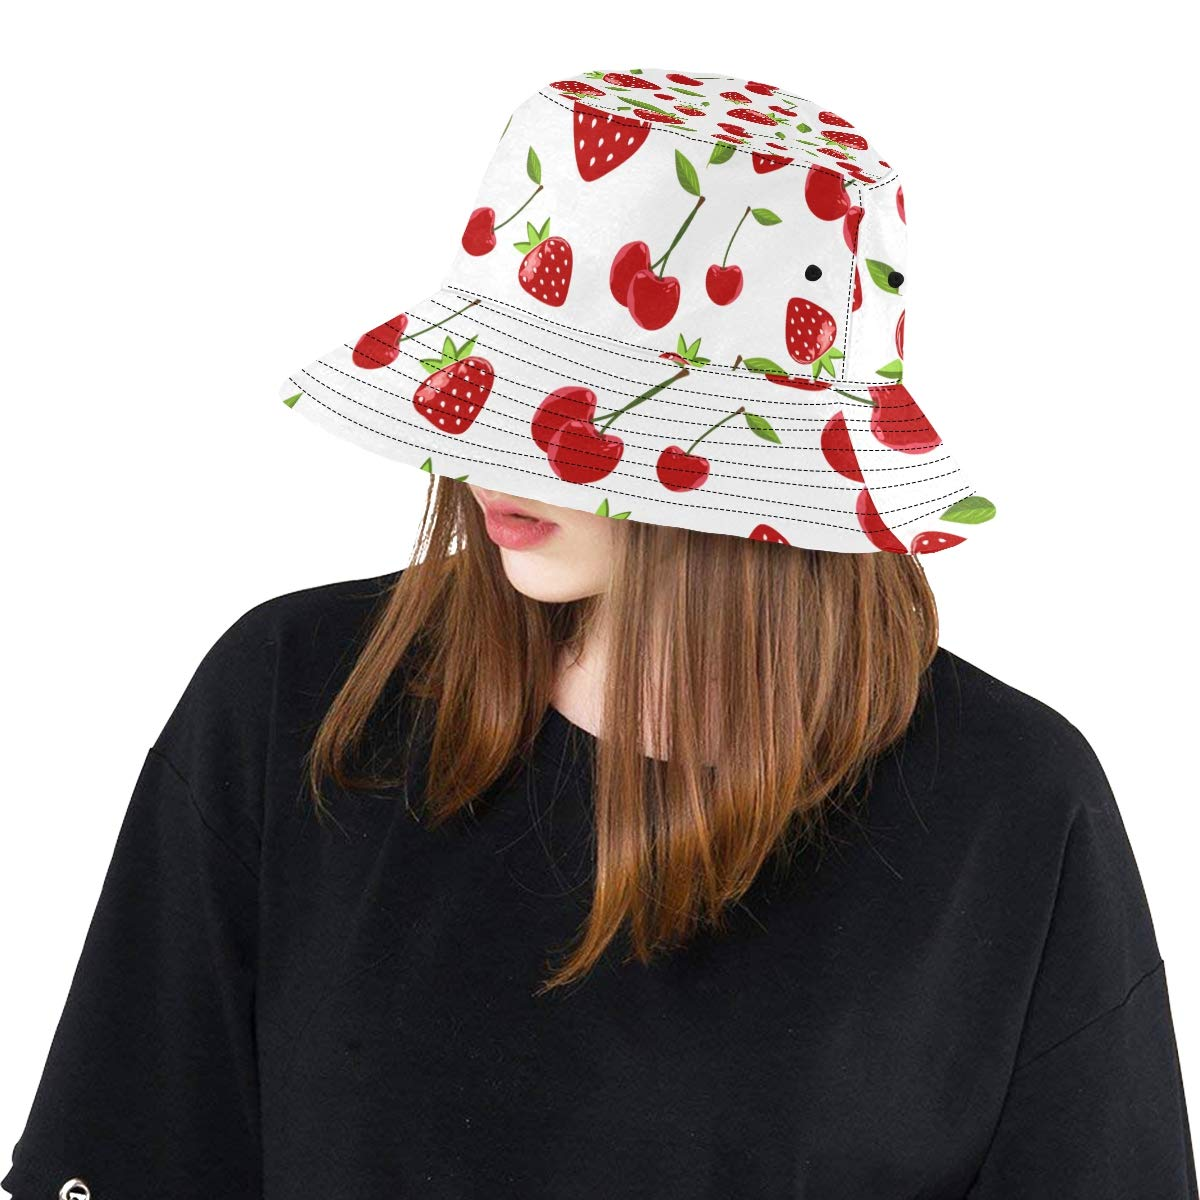 Teens Women and Men with Customize Top Packable Fisherman Cap for Outdoor Travel Strawberry Fruit Fashion New Summer Unisex Cotton Fashion Fishing Sun Bucket Hats for Kid